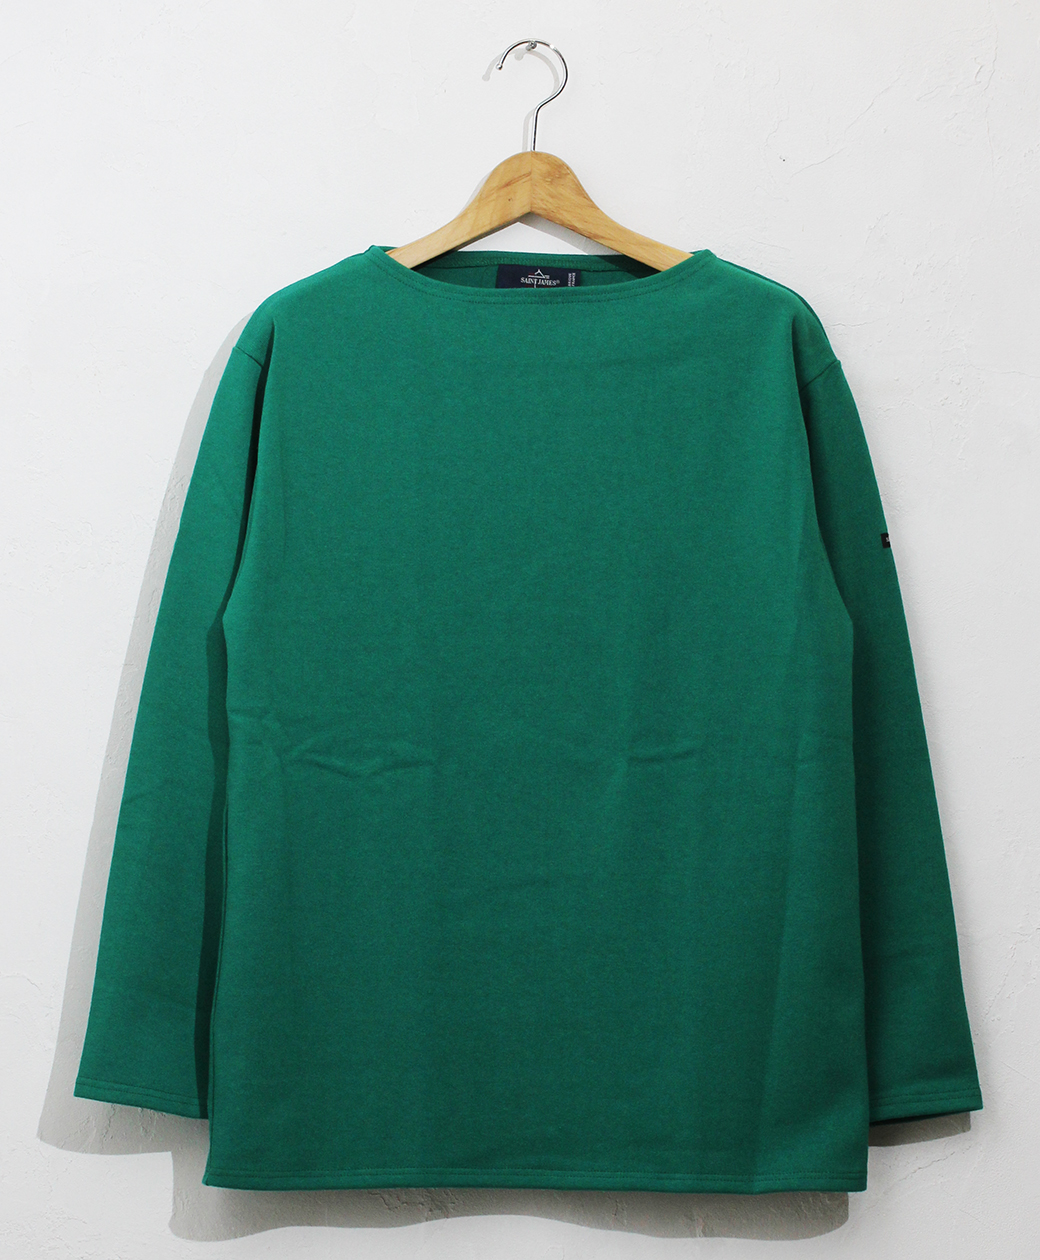 SAINT JAMES OUESSANT SOLID(GREEN)